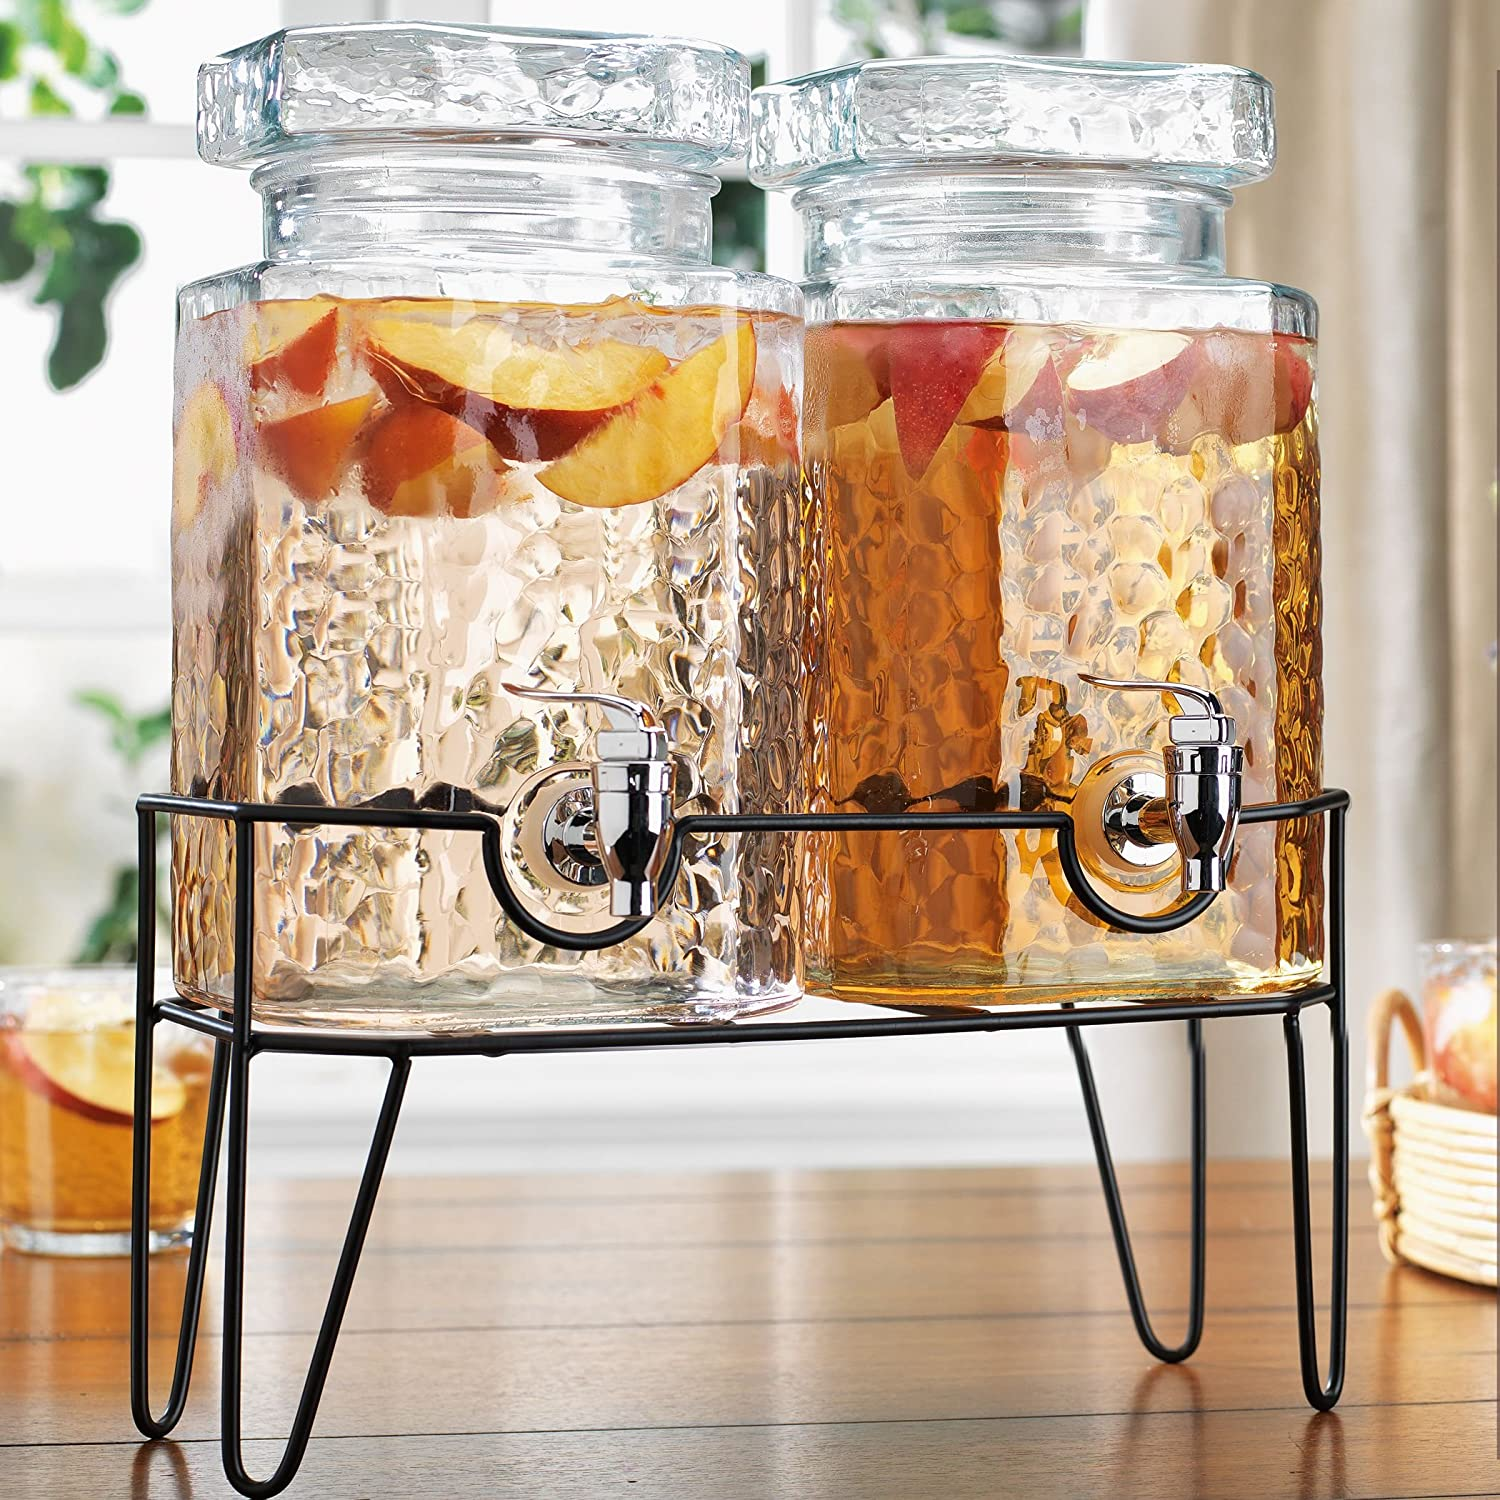 Home Essentials Double 1 Gallon Hammered Beverage Dispenser On Rack, claer glass-metal